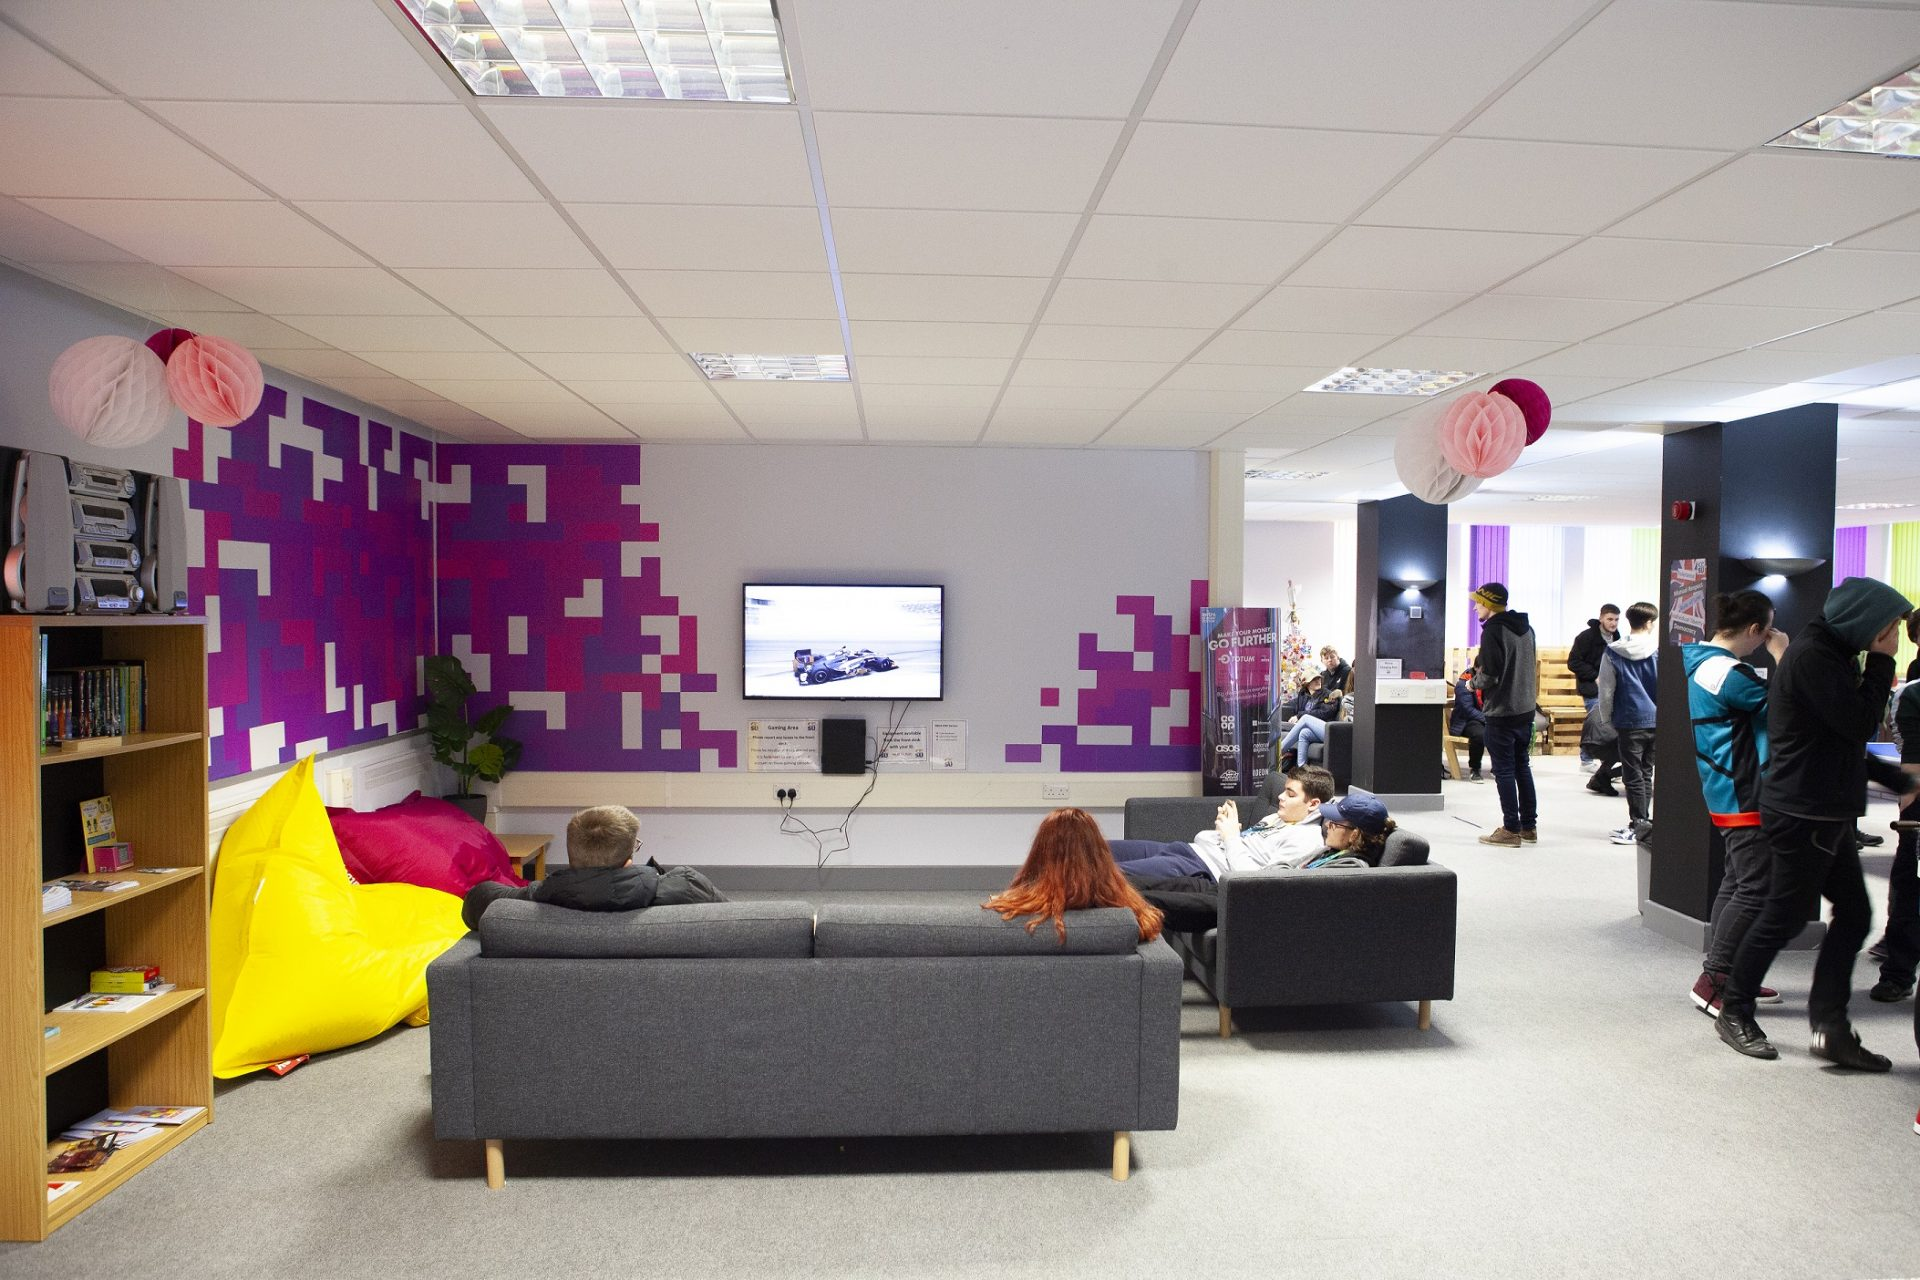 Students relaxing in The Space at Cornwall College St Austell